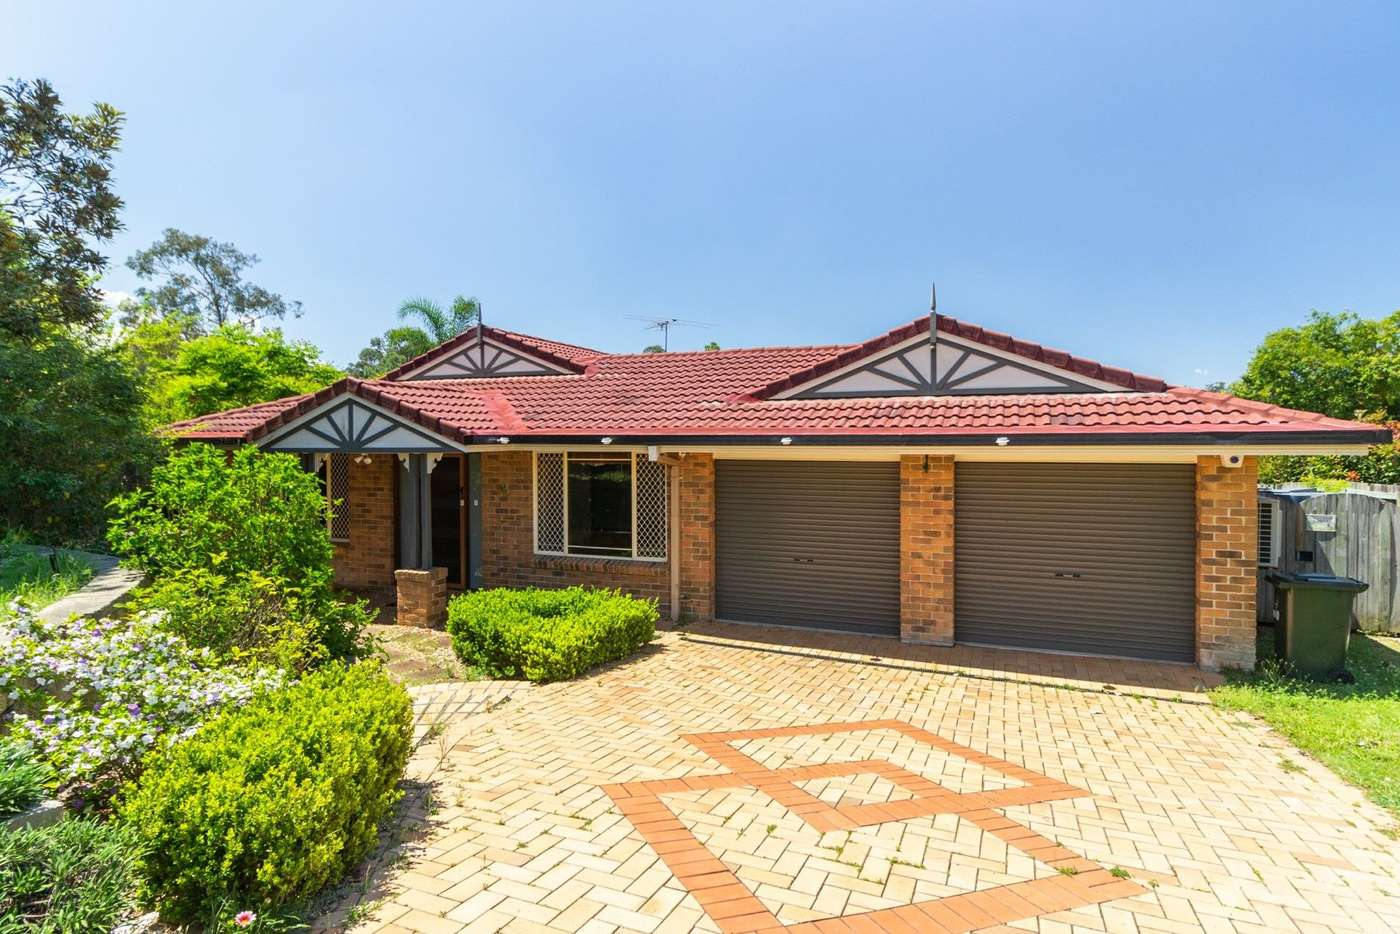 Main view of Homely house listing, 18 Baccata Place, Forest Lake QLD 4078